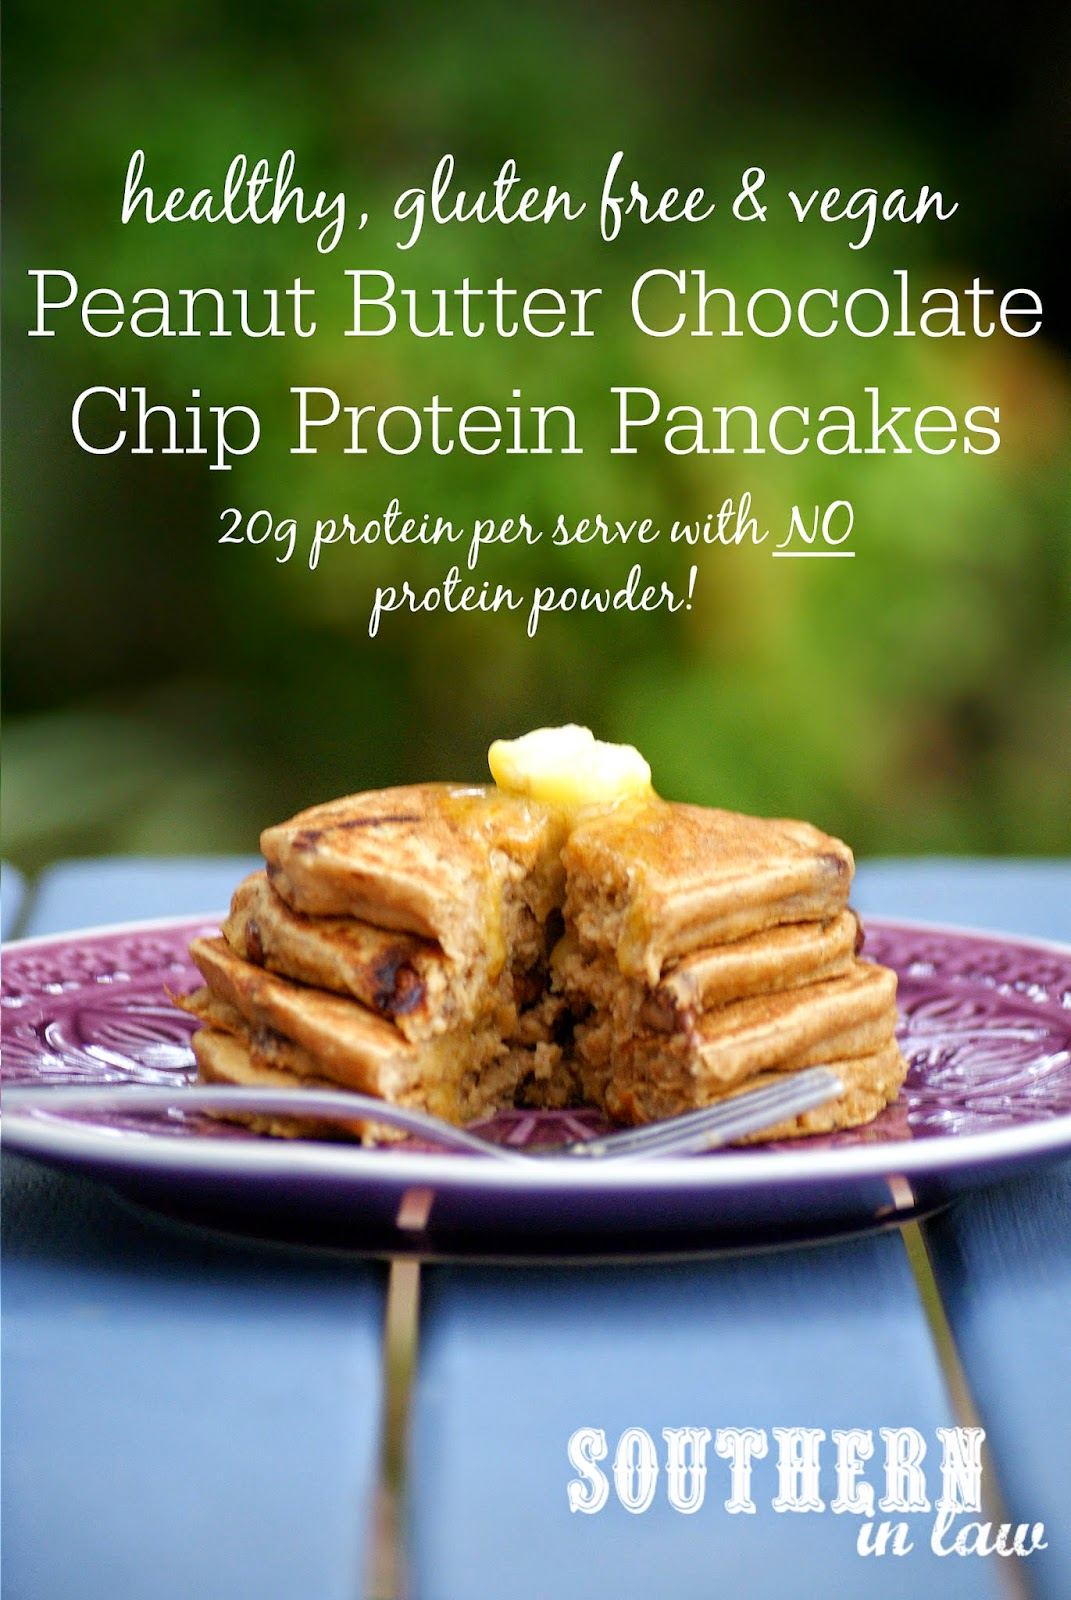 Gluten Free Peanut Butter Chocolate Chip Protein Pancakes - Protein Pancake Recipe Without Protein Powder - gluten free, vegan, clean eating friendly, sugar free, gluten free, healthy, egg free, dairy free